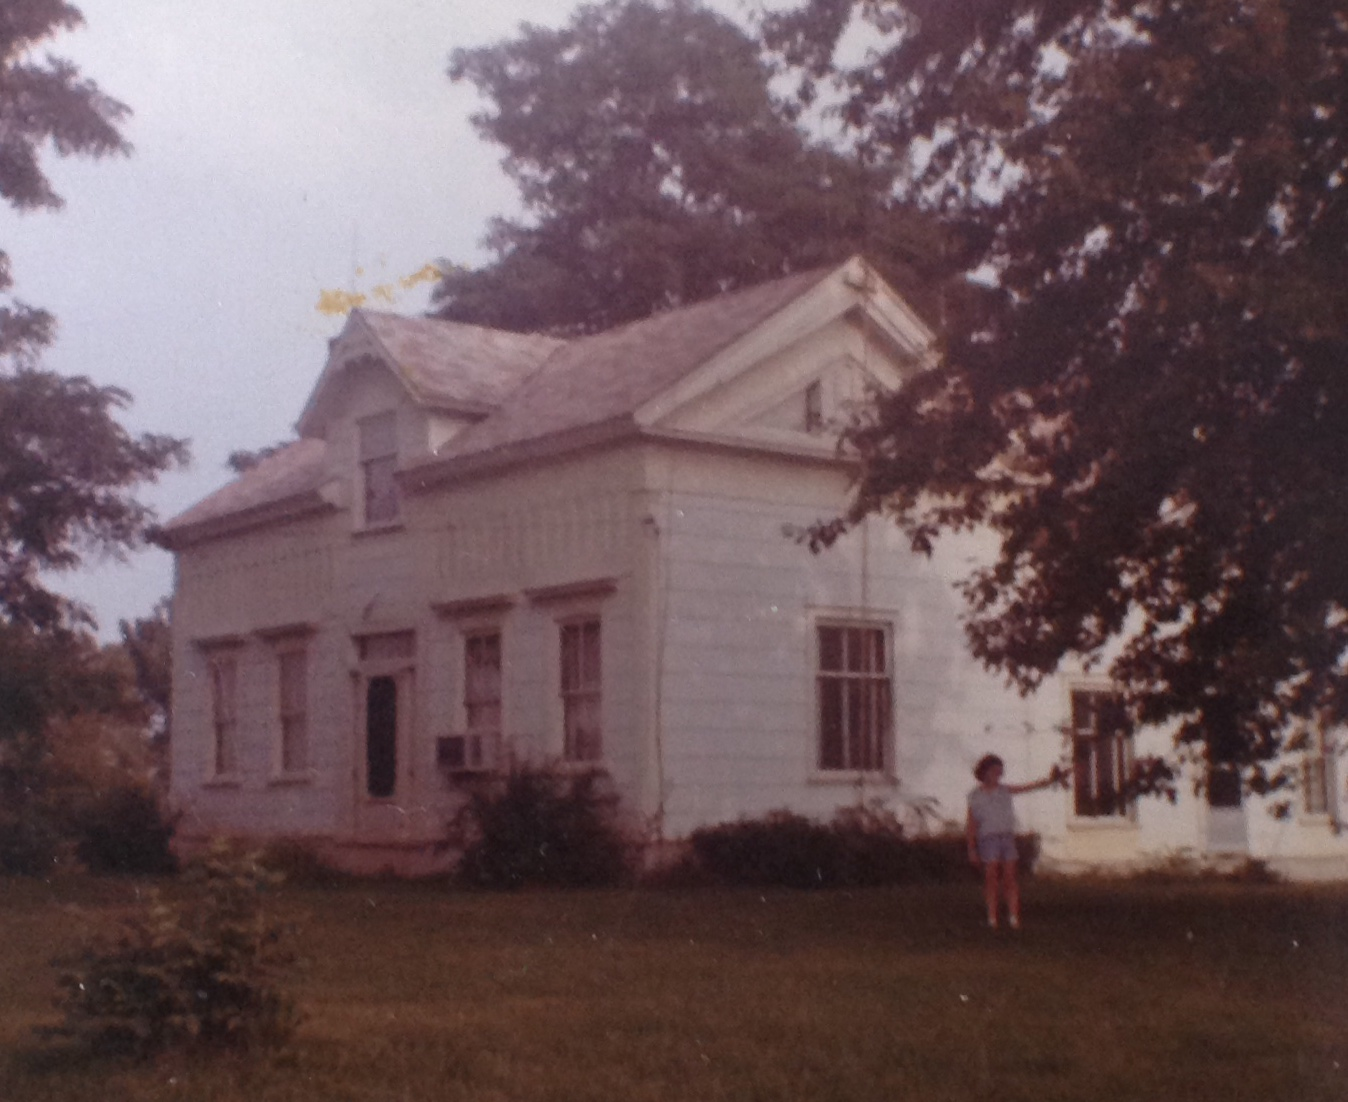 Photo of the front of our 100 year old farm house taken in the year of 1960.